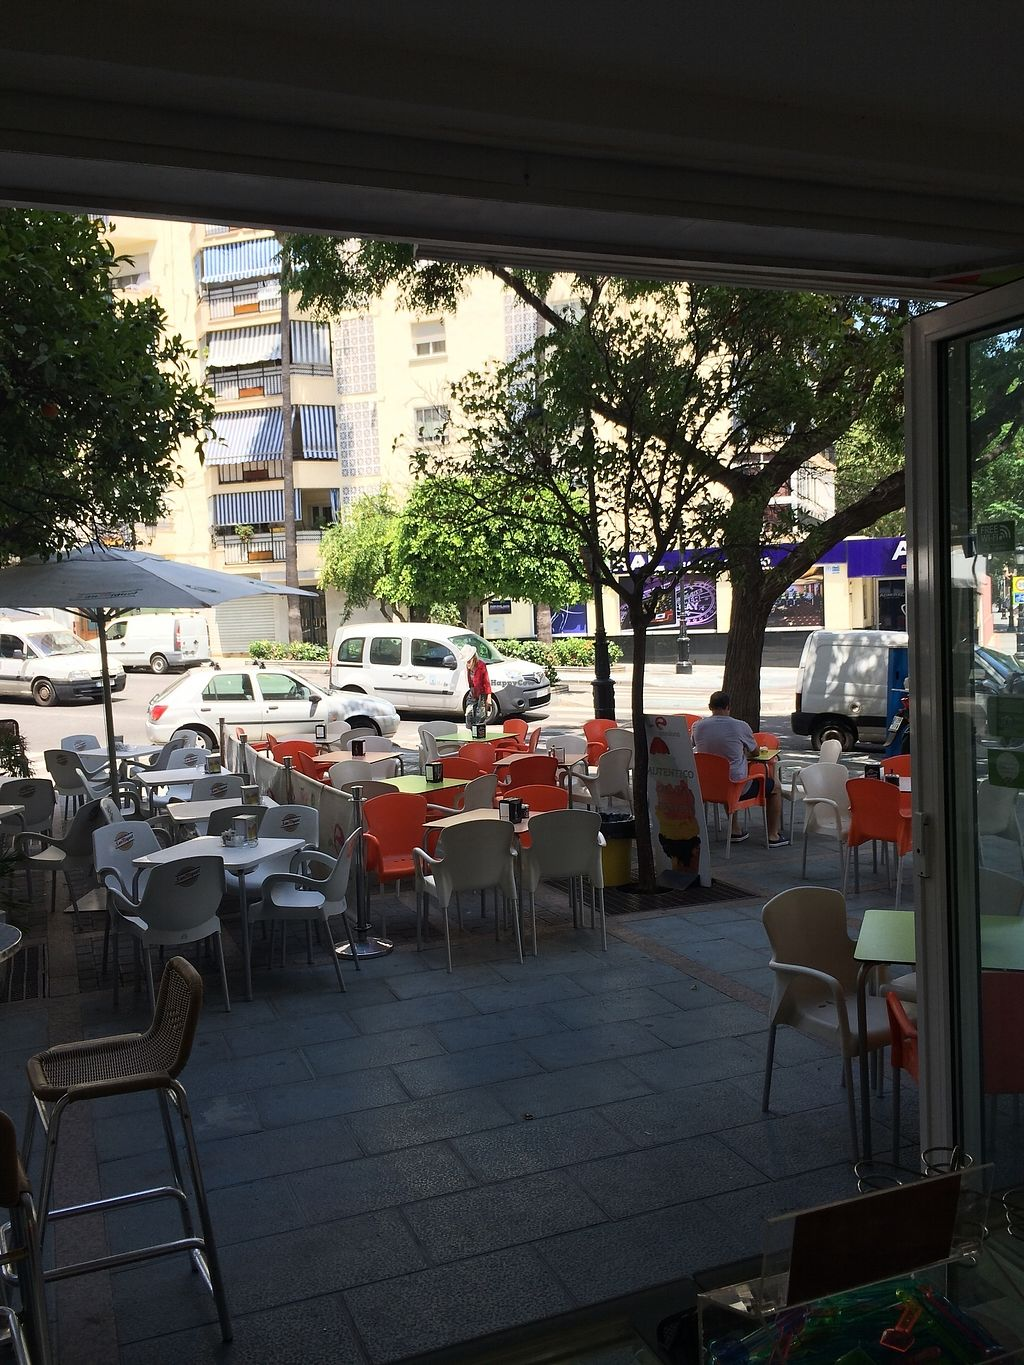 """Photo of Fresca Passione Heladeria  by <a href=""""/members/profile/pauletam"""">pauletam</a> <br/>Outside tables <br/> June 23, 2017  - <a href='/contact/abuse/image/94479/272485'>Report</a>"""